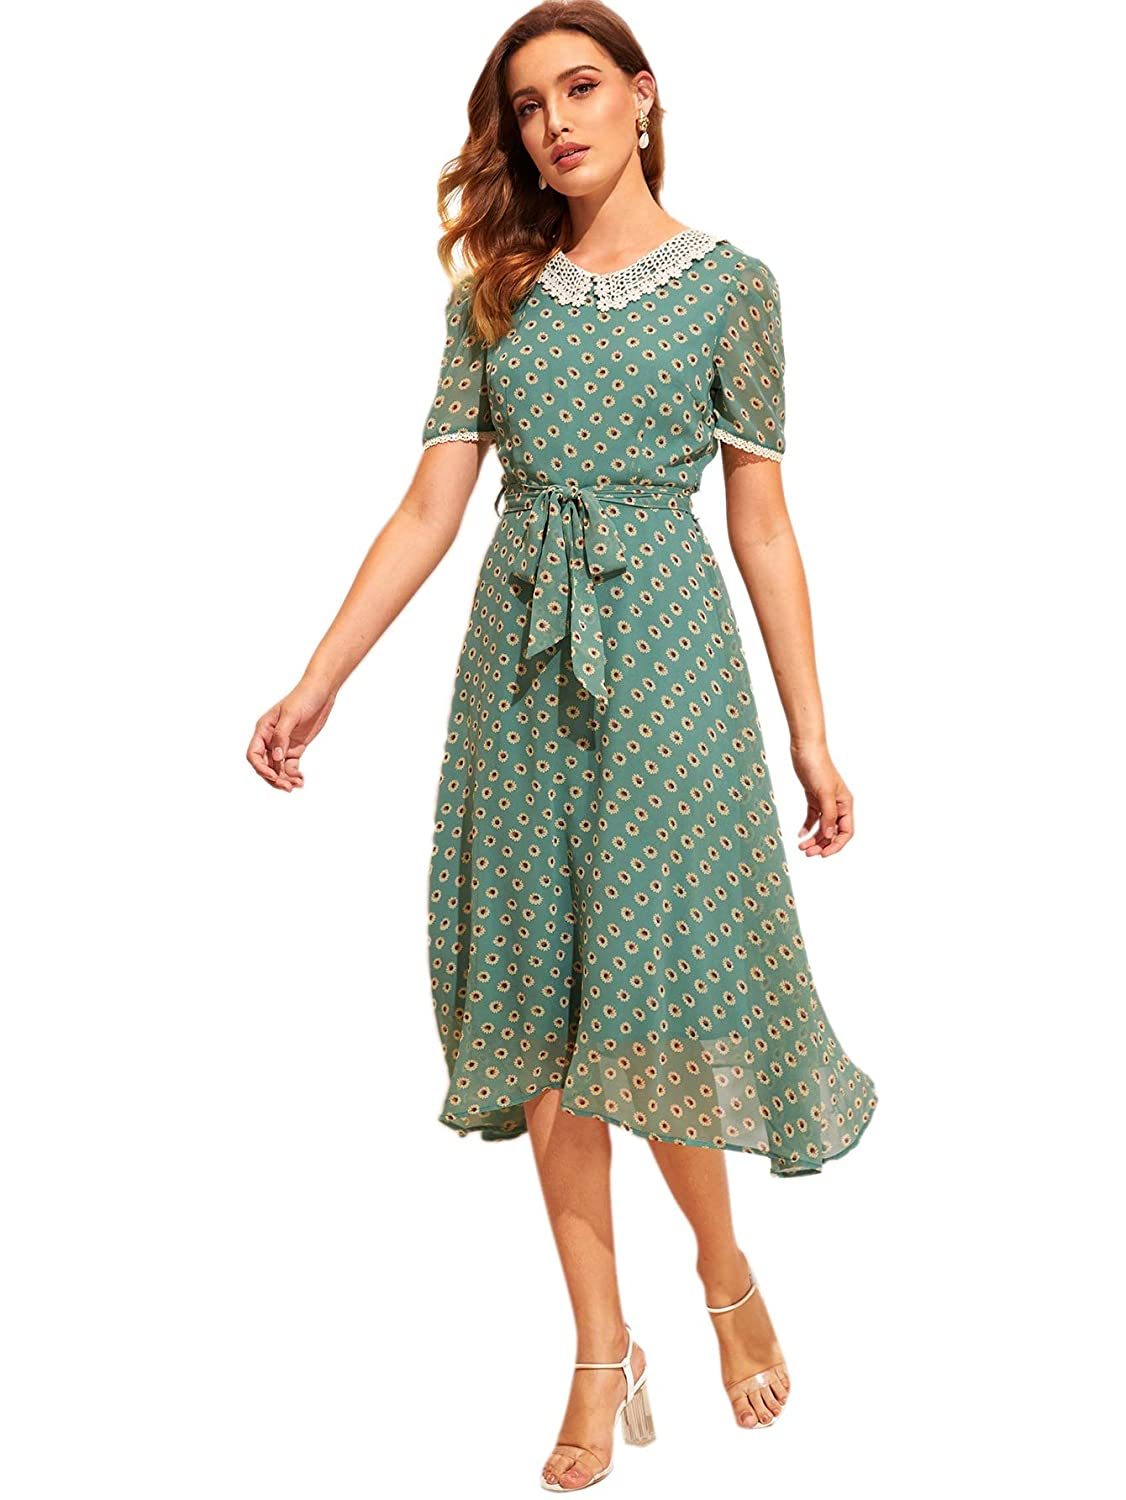 1940s Dresses | 40s Dress, Swing Dress Verdusa Womens Peter Pan Collar Lace Trim Floral Belted Vintage Chiffon Midi Dress $34.99 AT vintagedancer.com